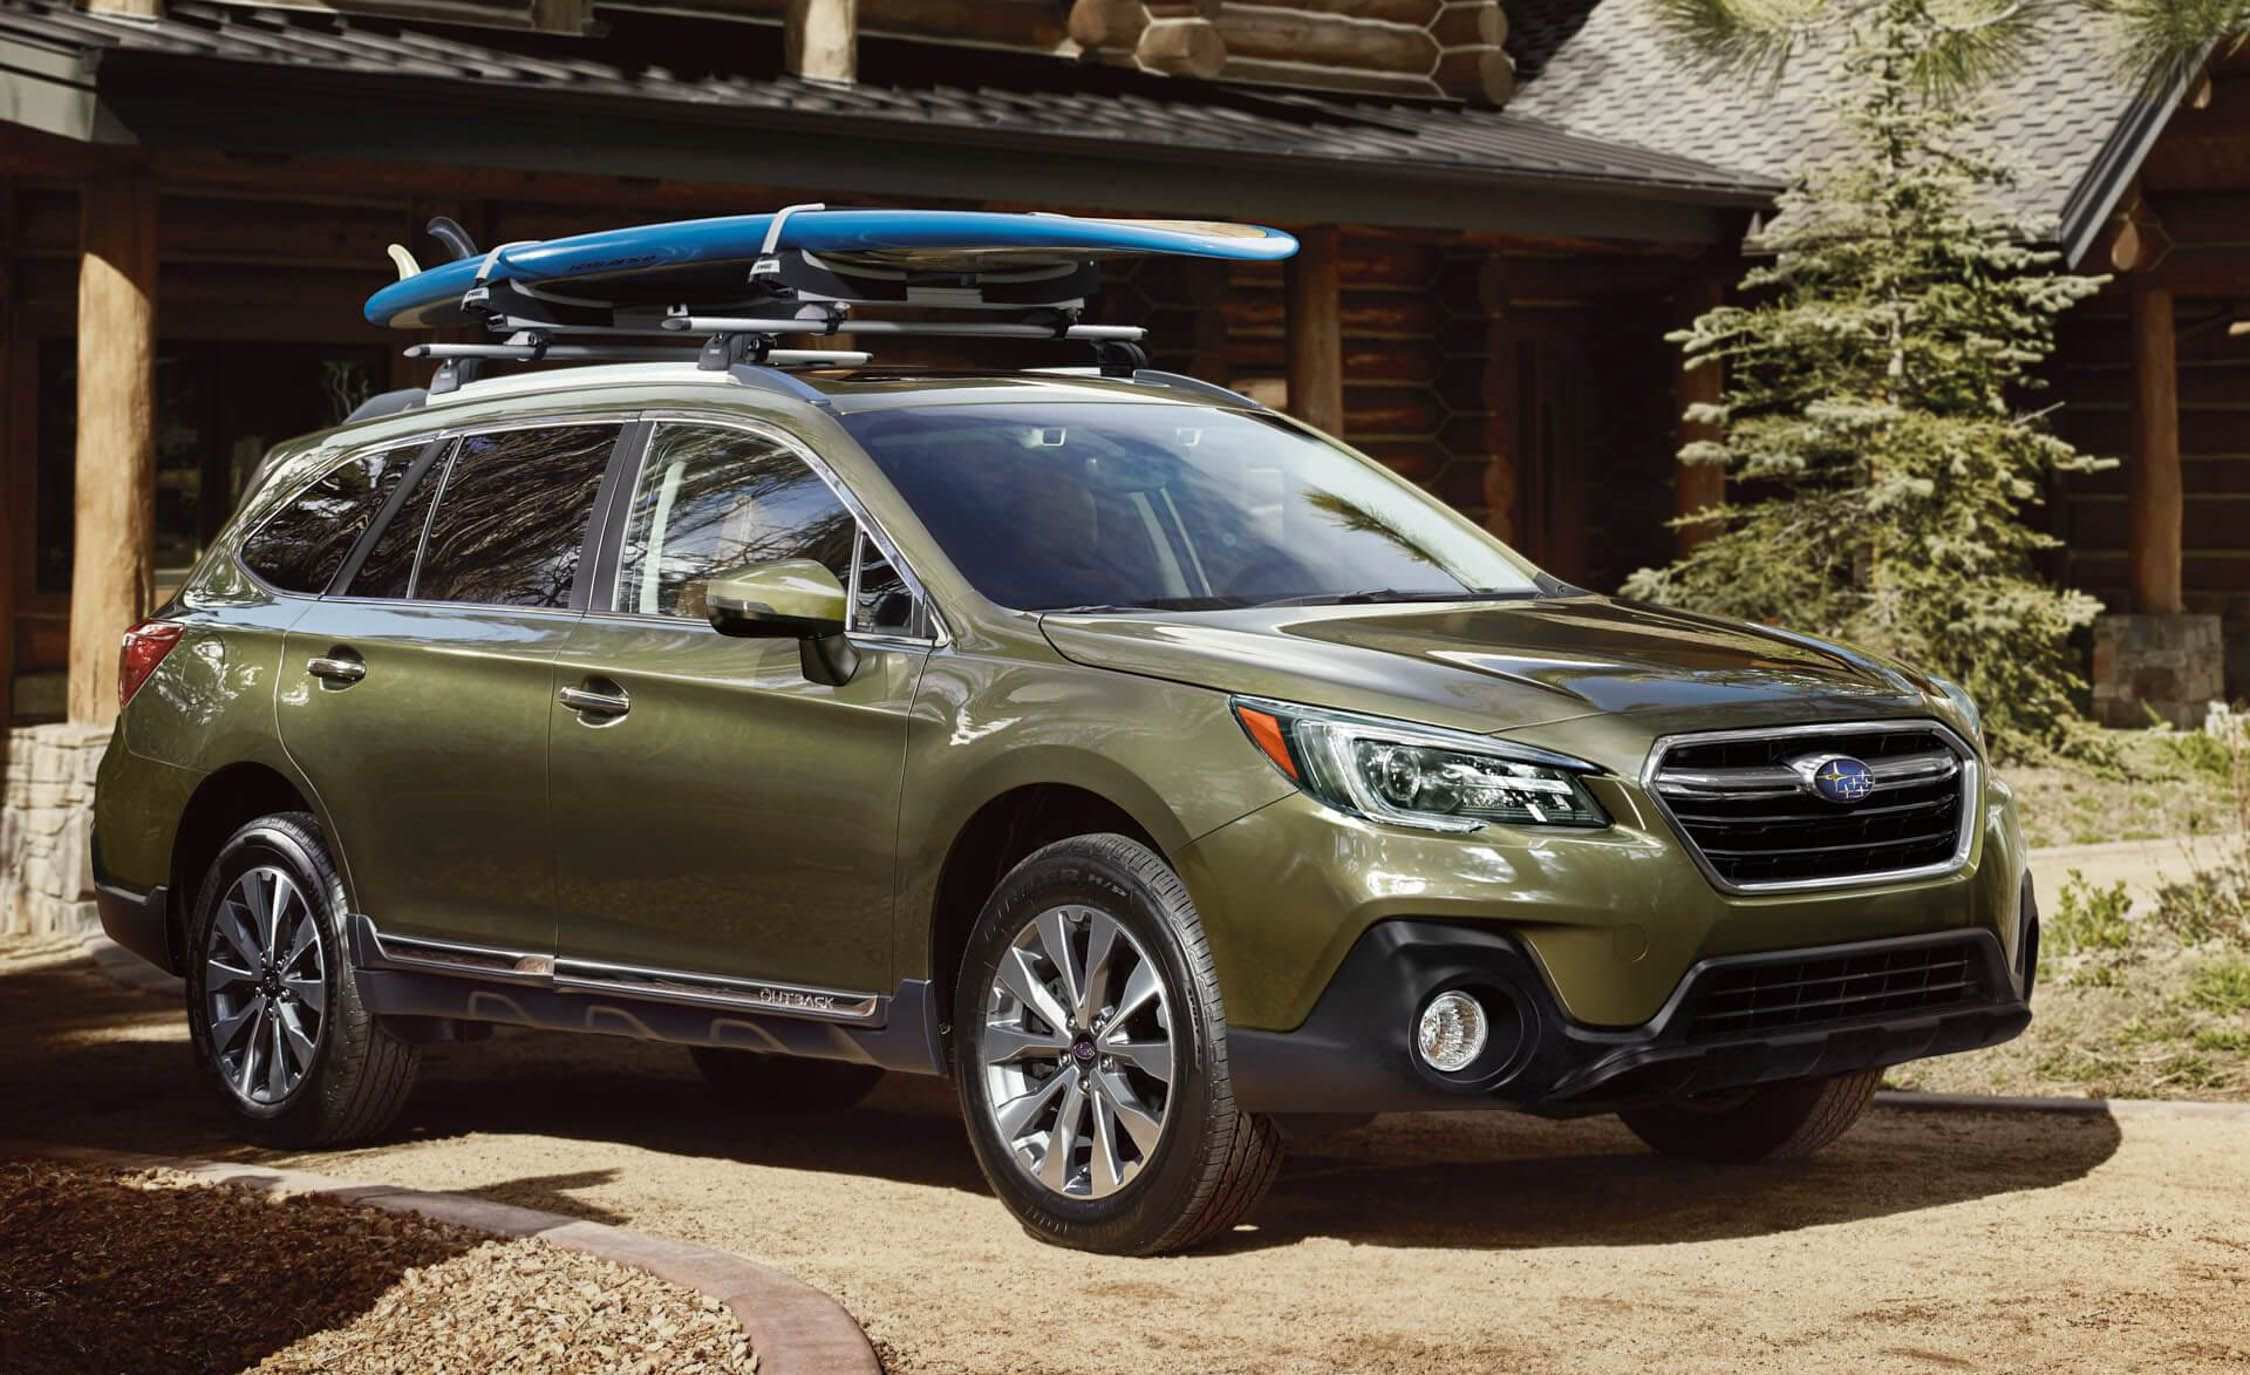 69 Best Review 2020 Subaru Outback Wagon Exterior with 2020 Subaru Outback Wagon